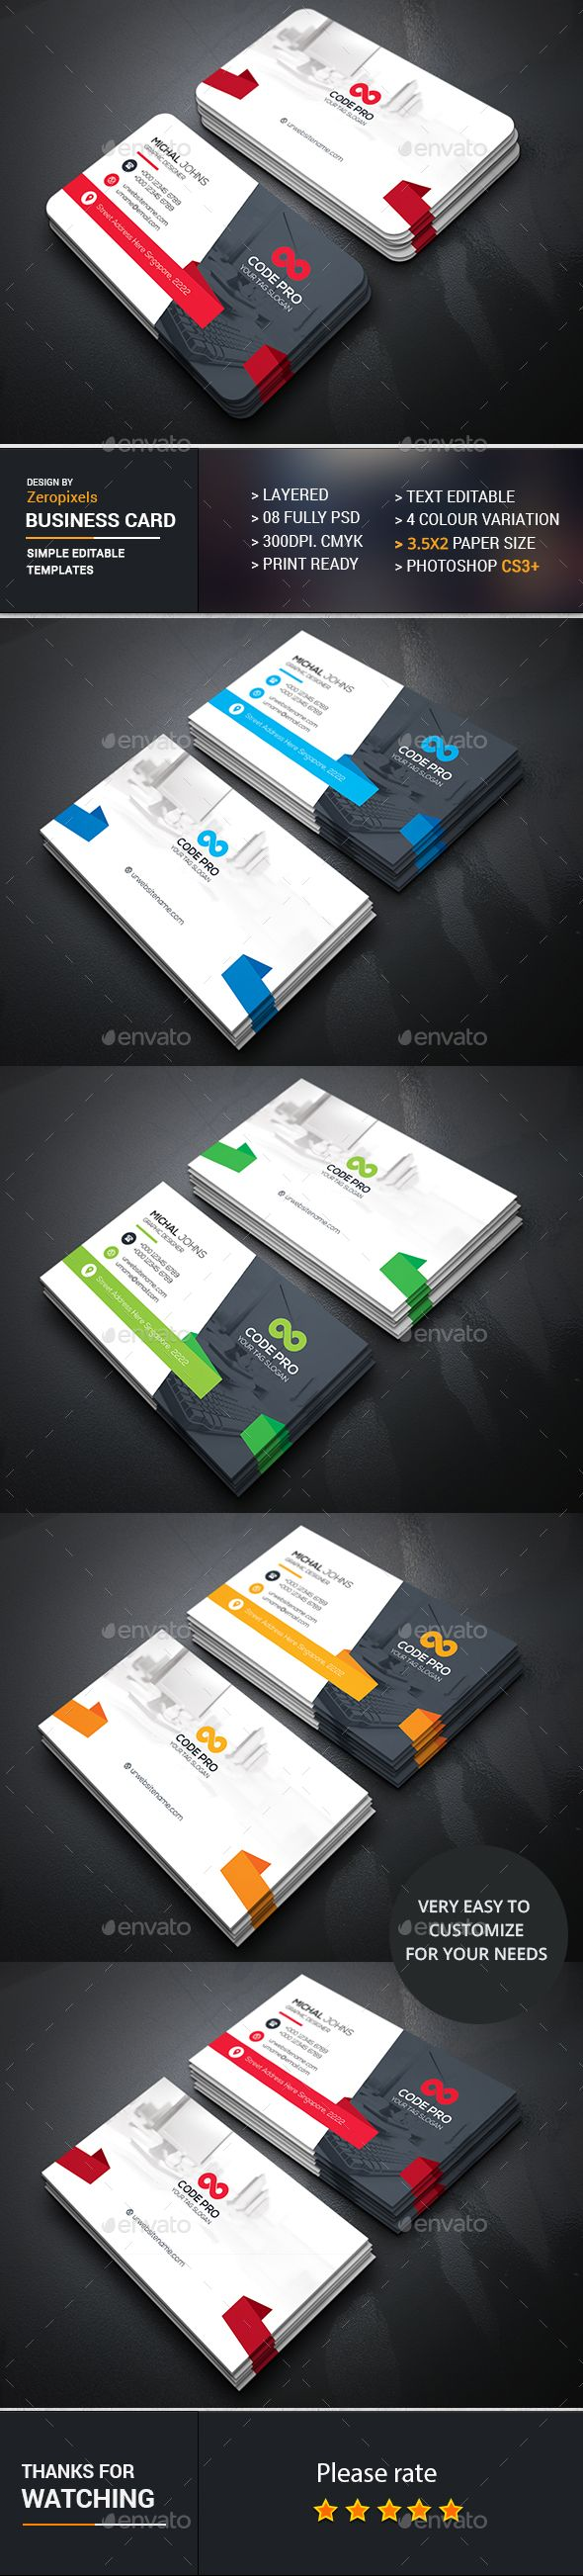 214 best business cards images on pinterest business card design fiverr freelancer will provide business cards stationery services and professional business card design including print ready within 2 days colourmoves